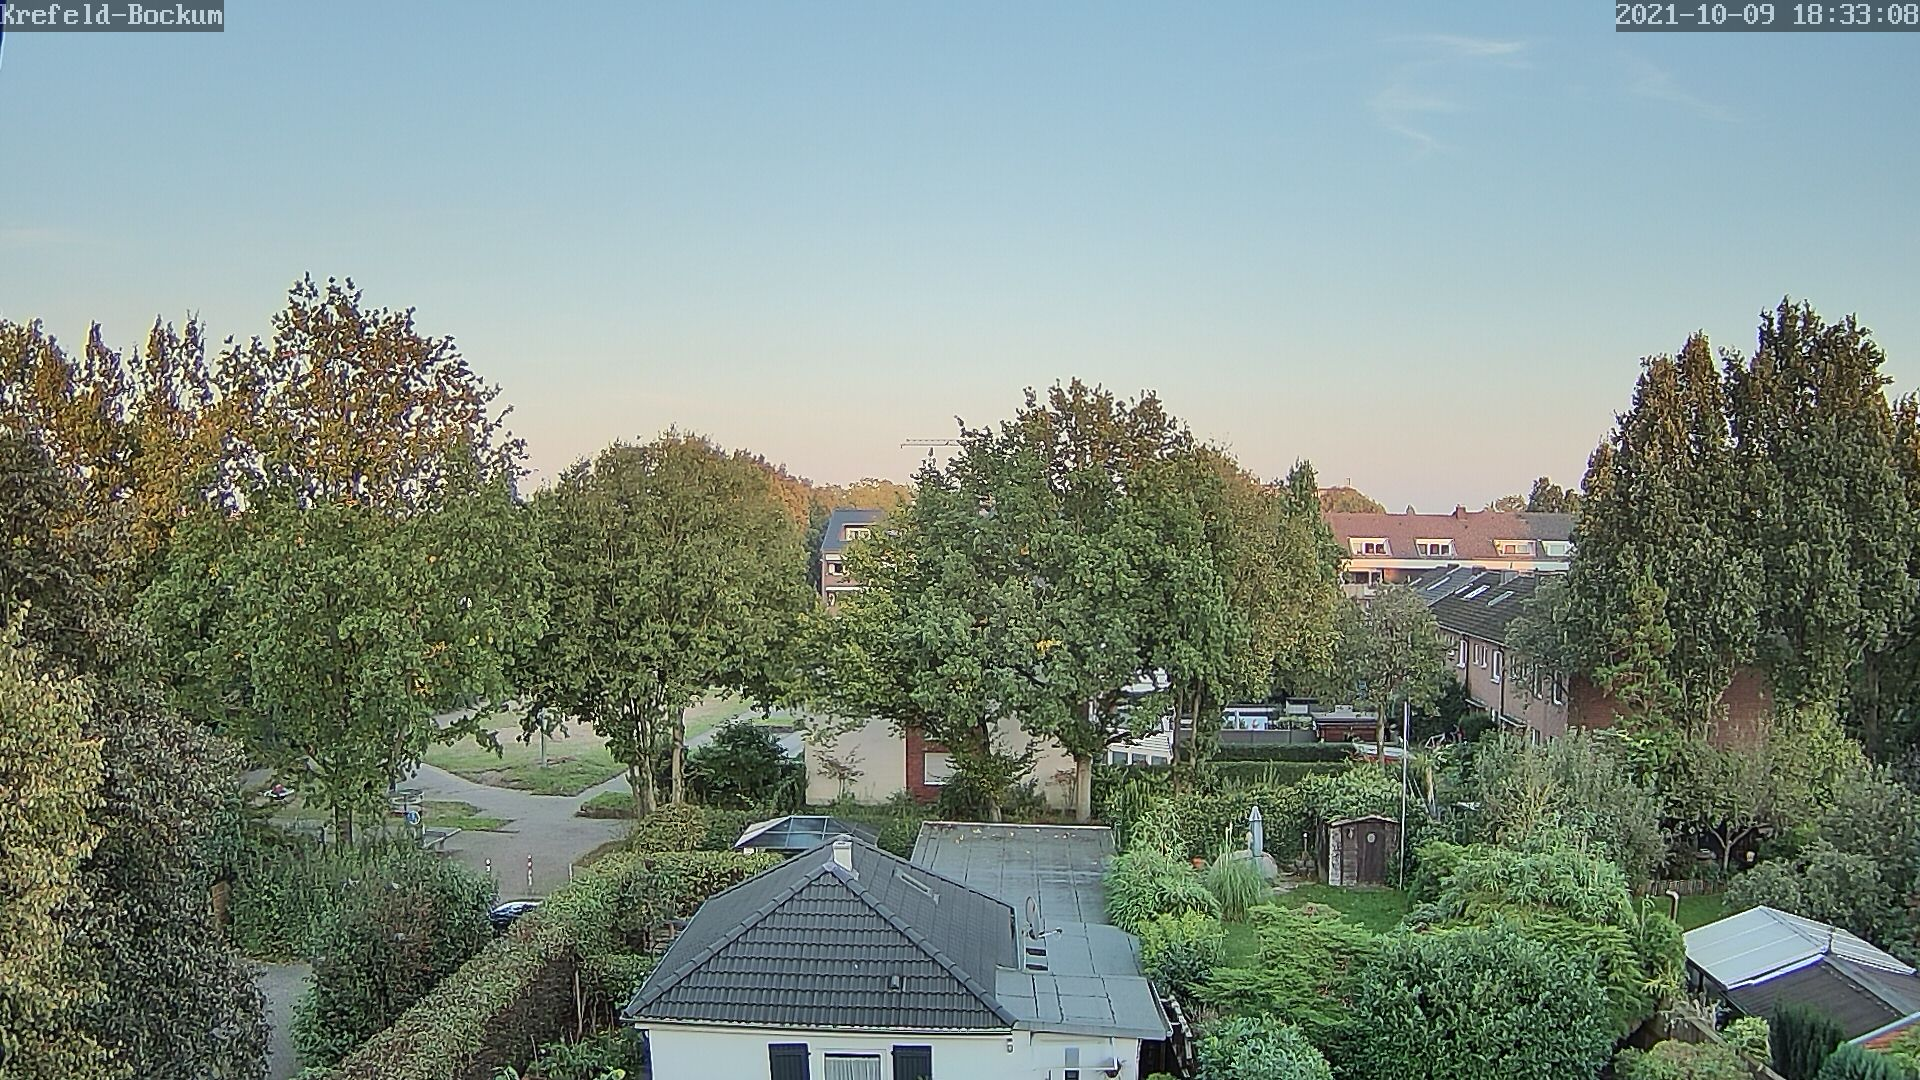 Webcambild, Krefeld Bockum